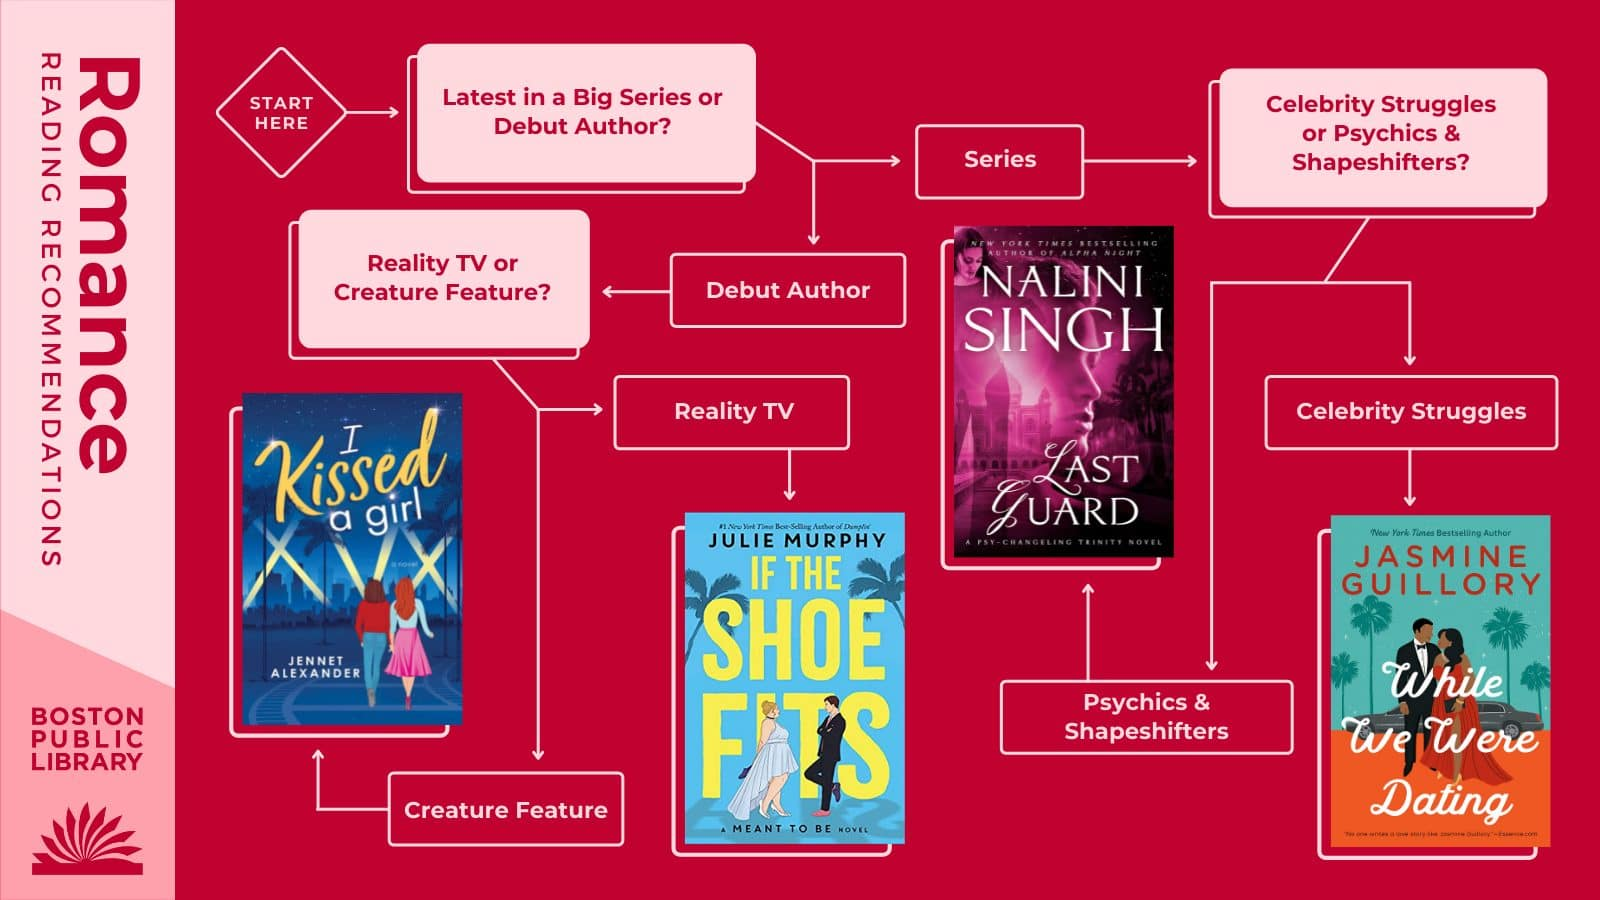 Q1:Latest in a big series or a debut author? Series —> Q2: Celebrity Struggles or Psychics & Shapeshifters? Celebrity Struggles: While We Were Dating by Jasmine Guillory | Psychics & Shapeshifters: Last Guard by Nalini Singh | Debut Author—> Q3:Reality TVor Creature Feature? | Reality TV: If the Shoe Fits by Julie Murphy | Creature Feature: I Kissed a Girl by Jennet Alexander.